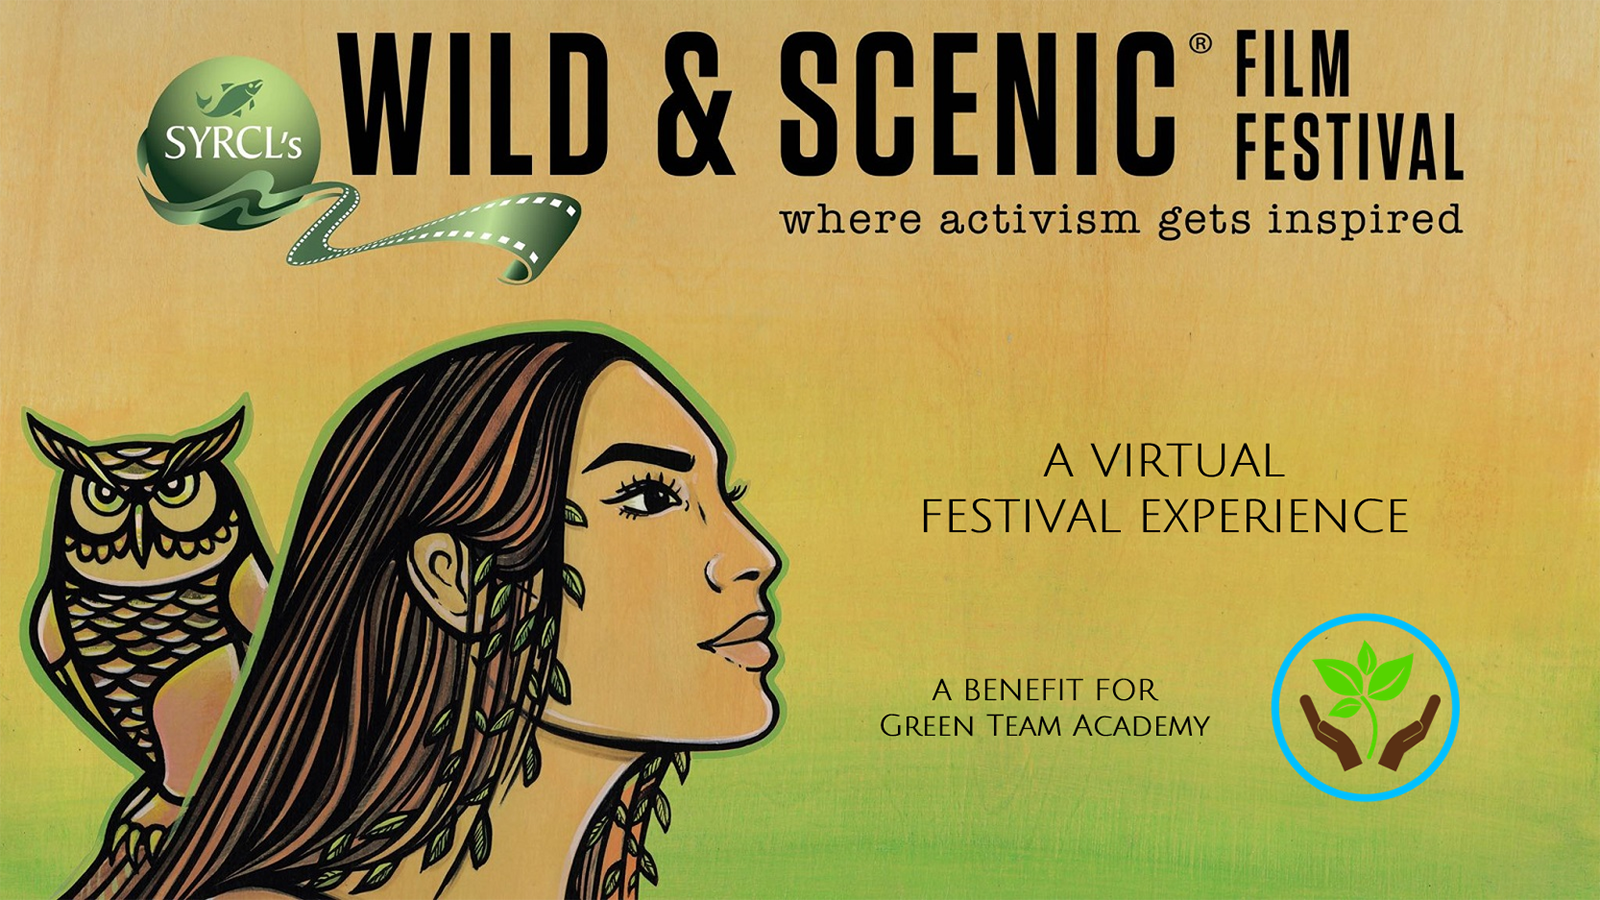 Green Team Academy Presents SYRCL's Wild & Scenic Film Festival On Tour